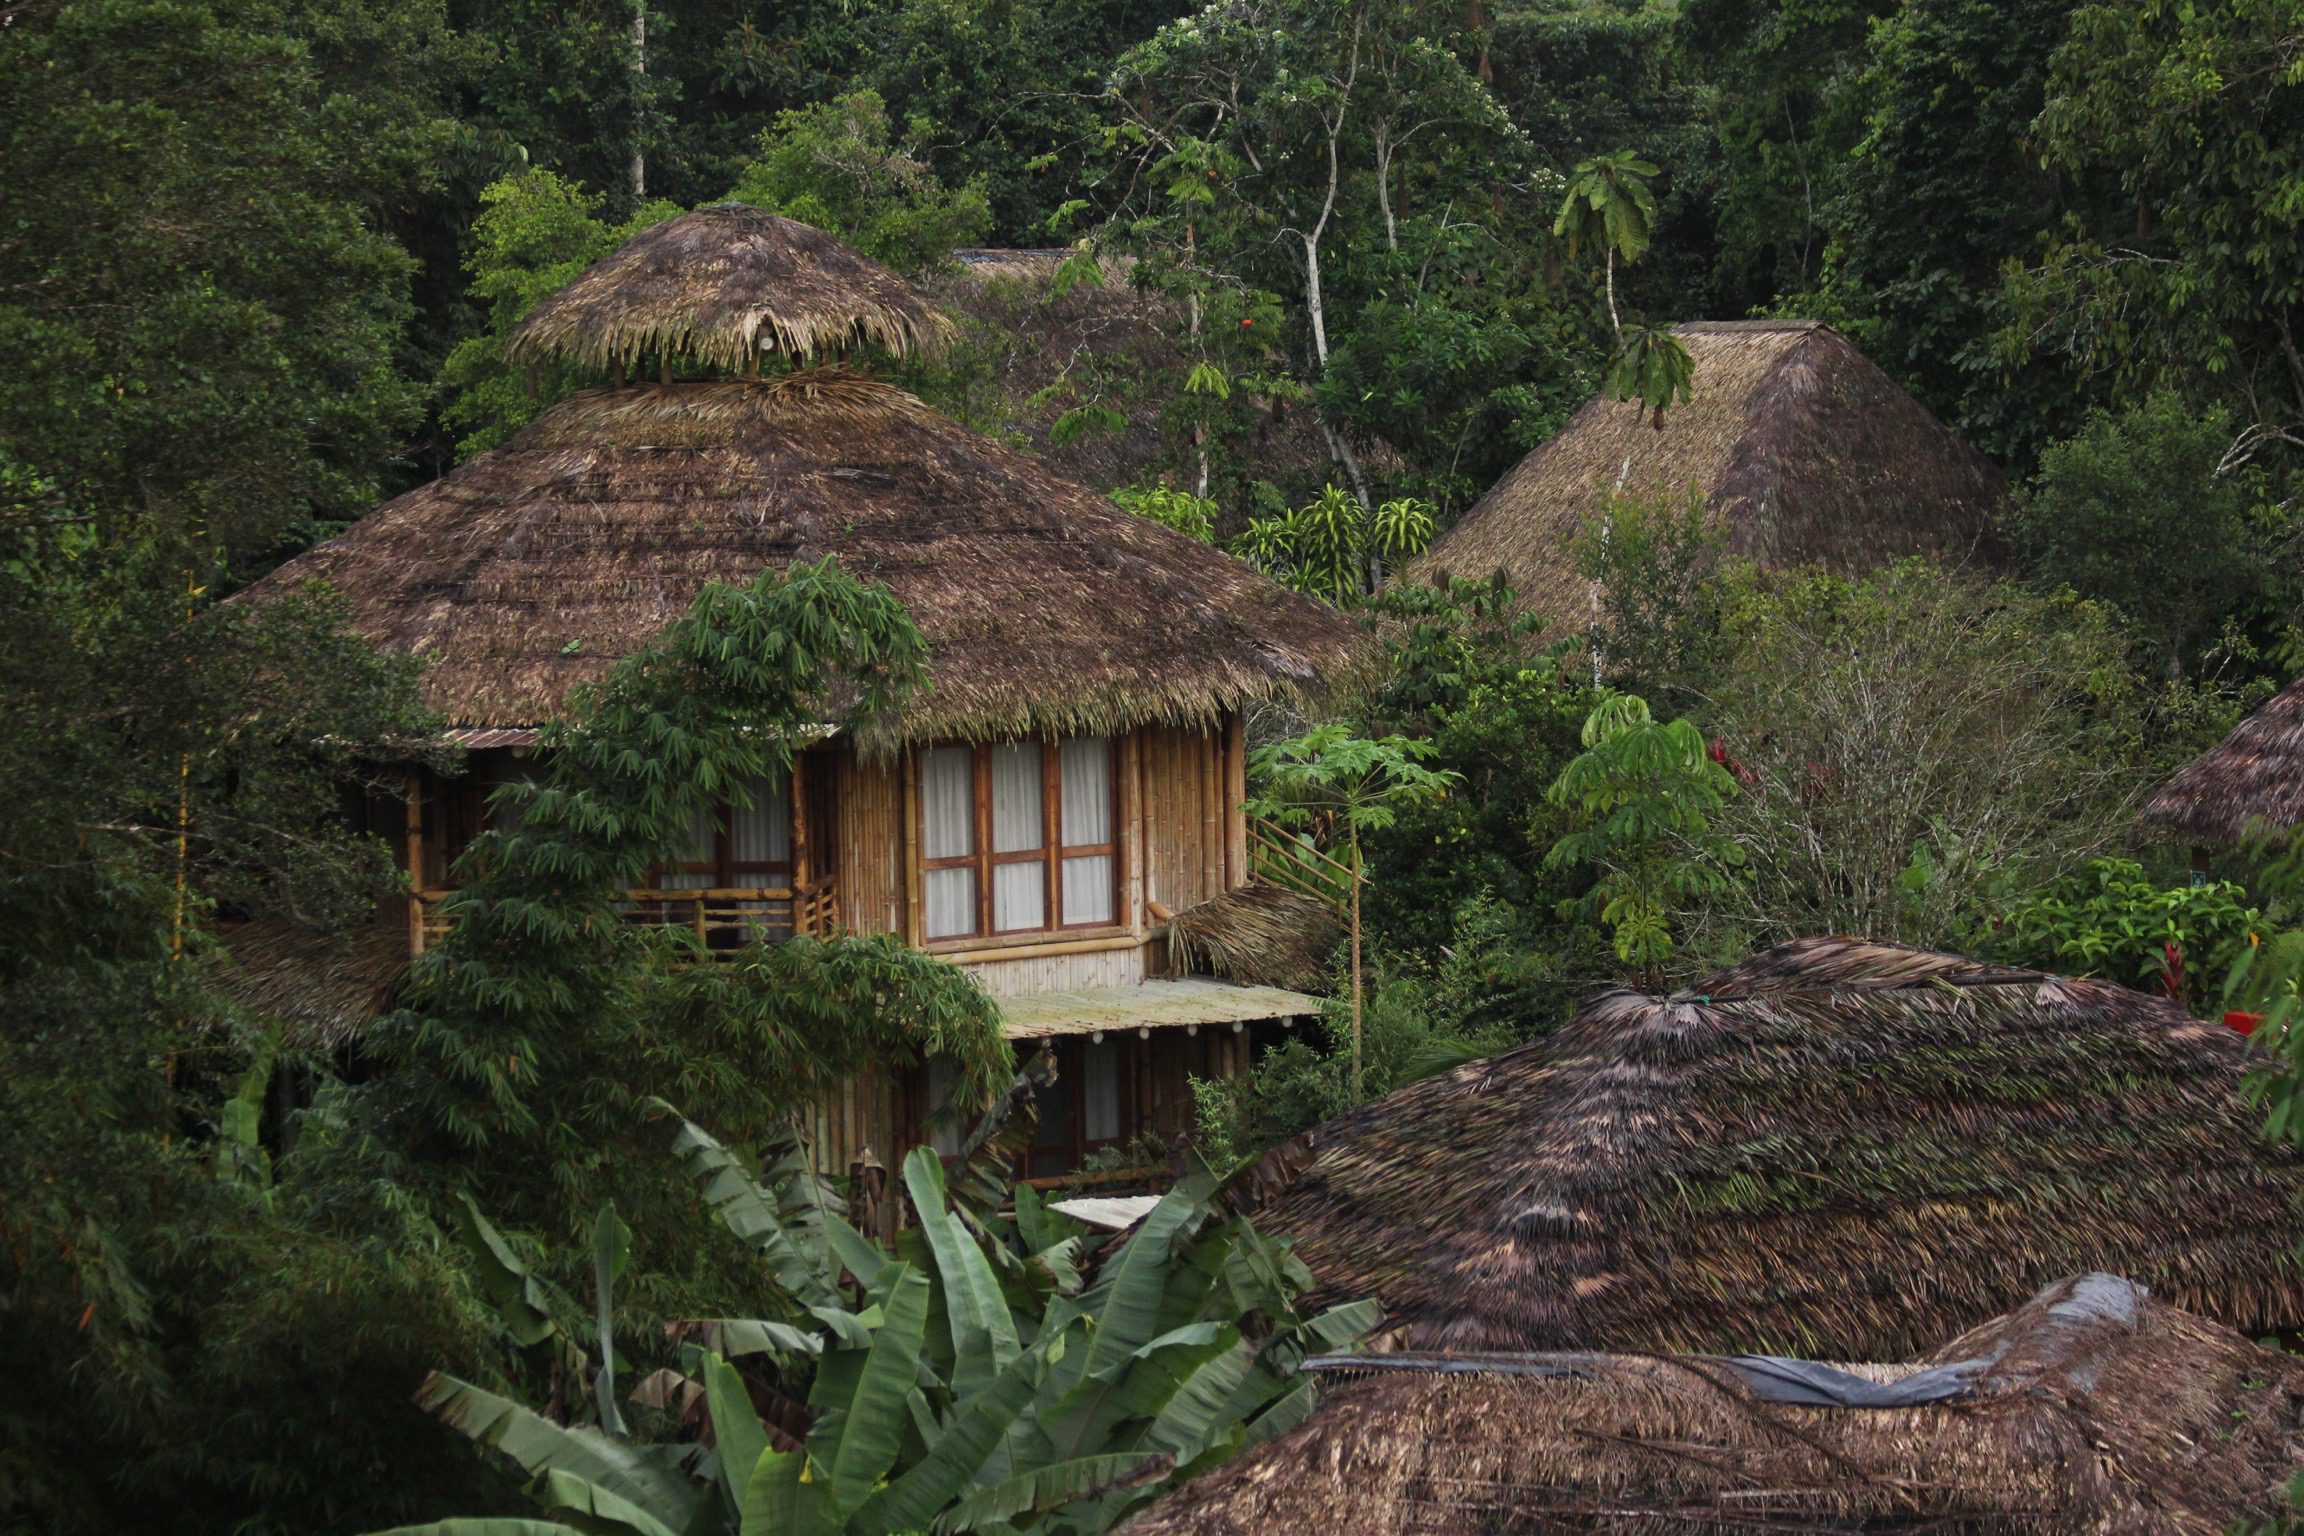 Eco lodge in jungle in Ecuador Amazon